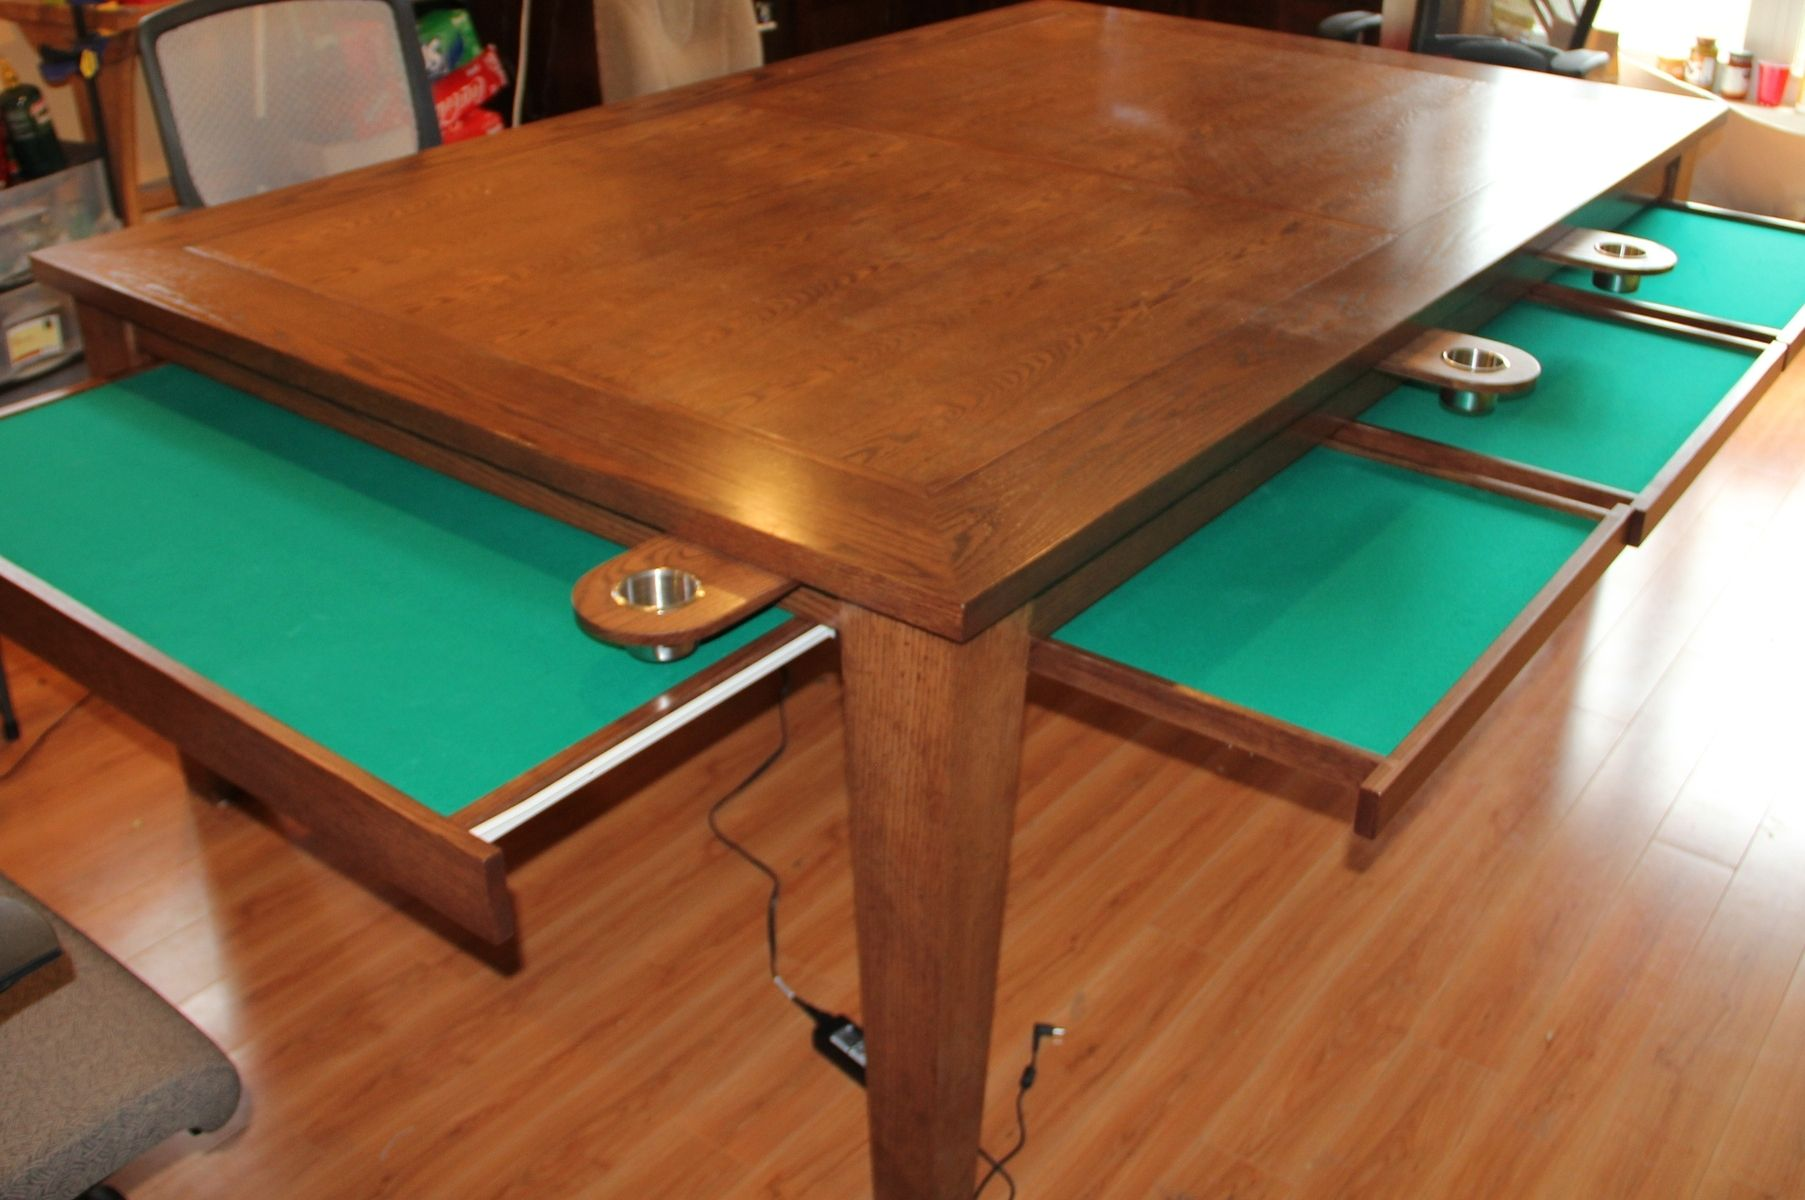 Dining Room Game Table Of Hand Crafted Game Table W Removable Top Cup Holders